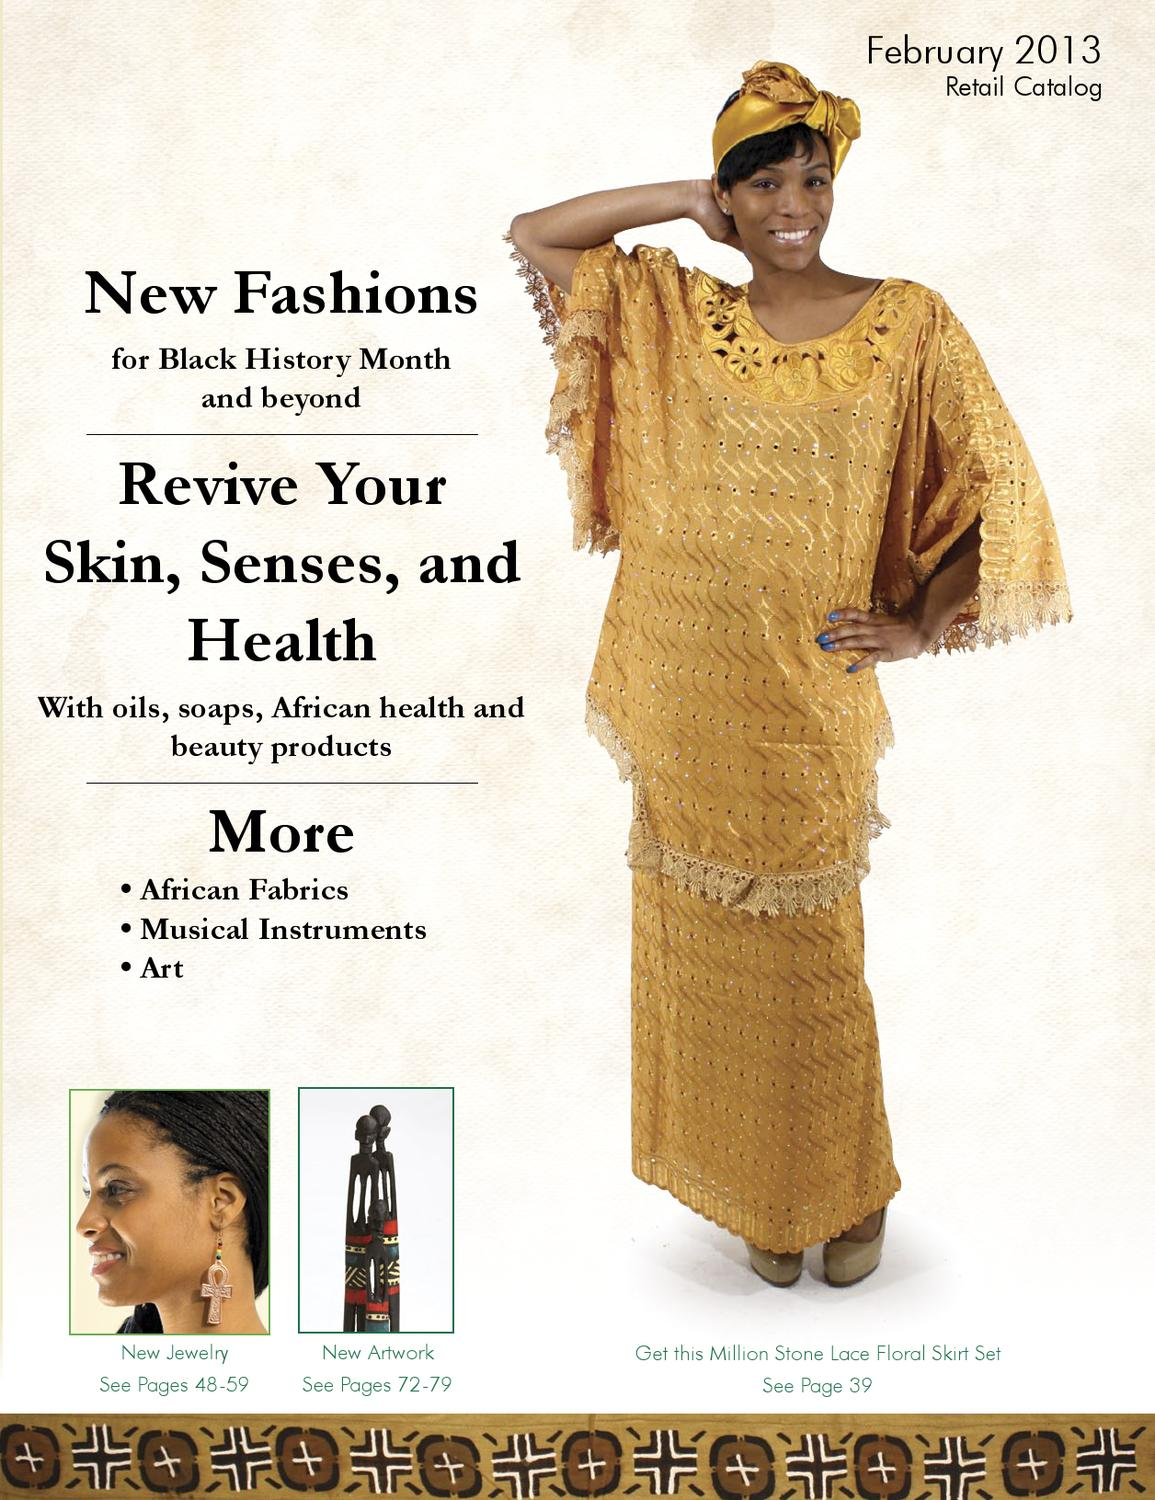 Acro February Complete Catalog By Dna Tested African Descendants Issuu Sweety Popok Bayi Pantz Royal Gold Xl 44